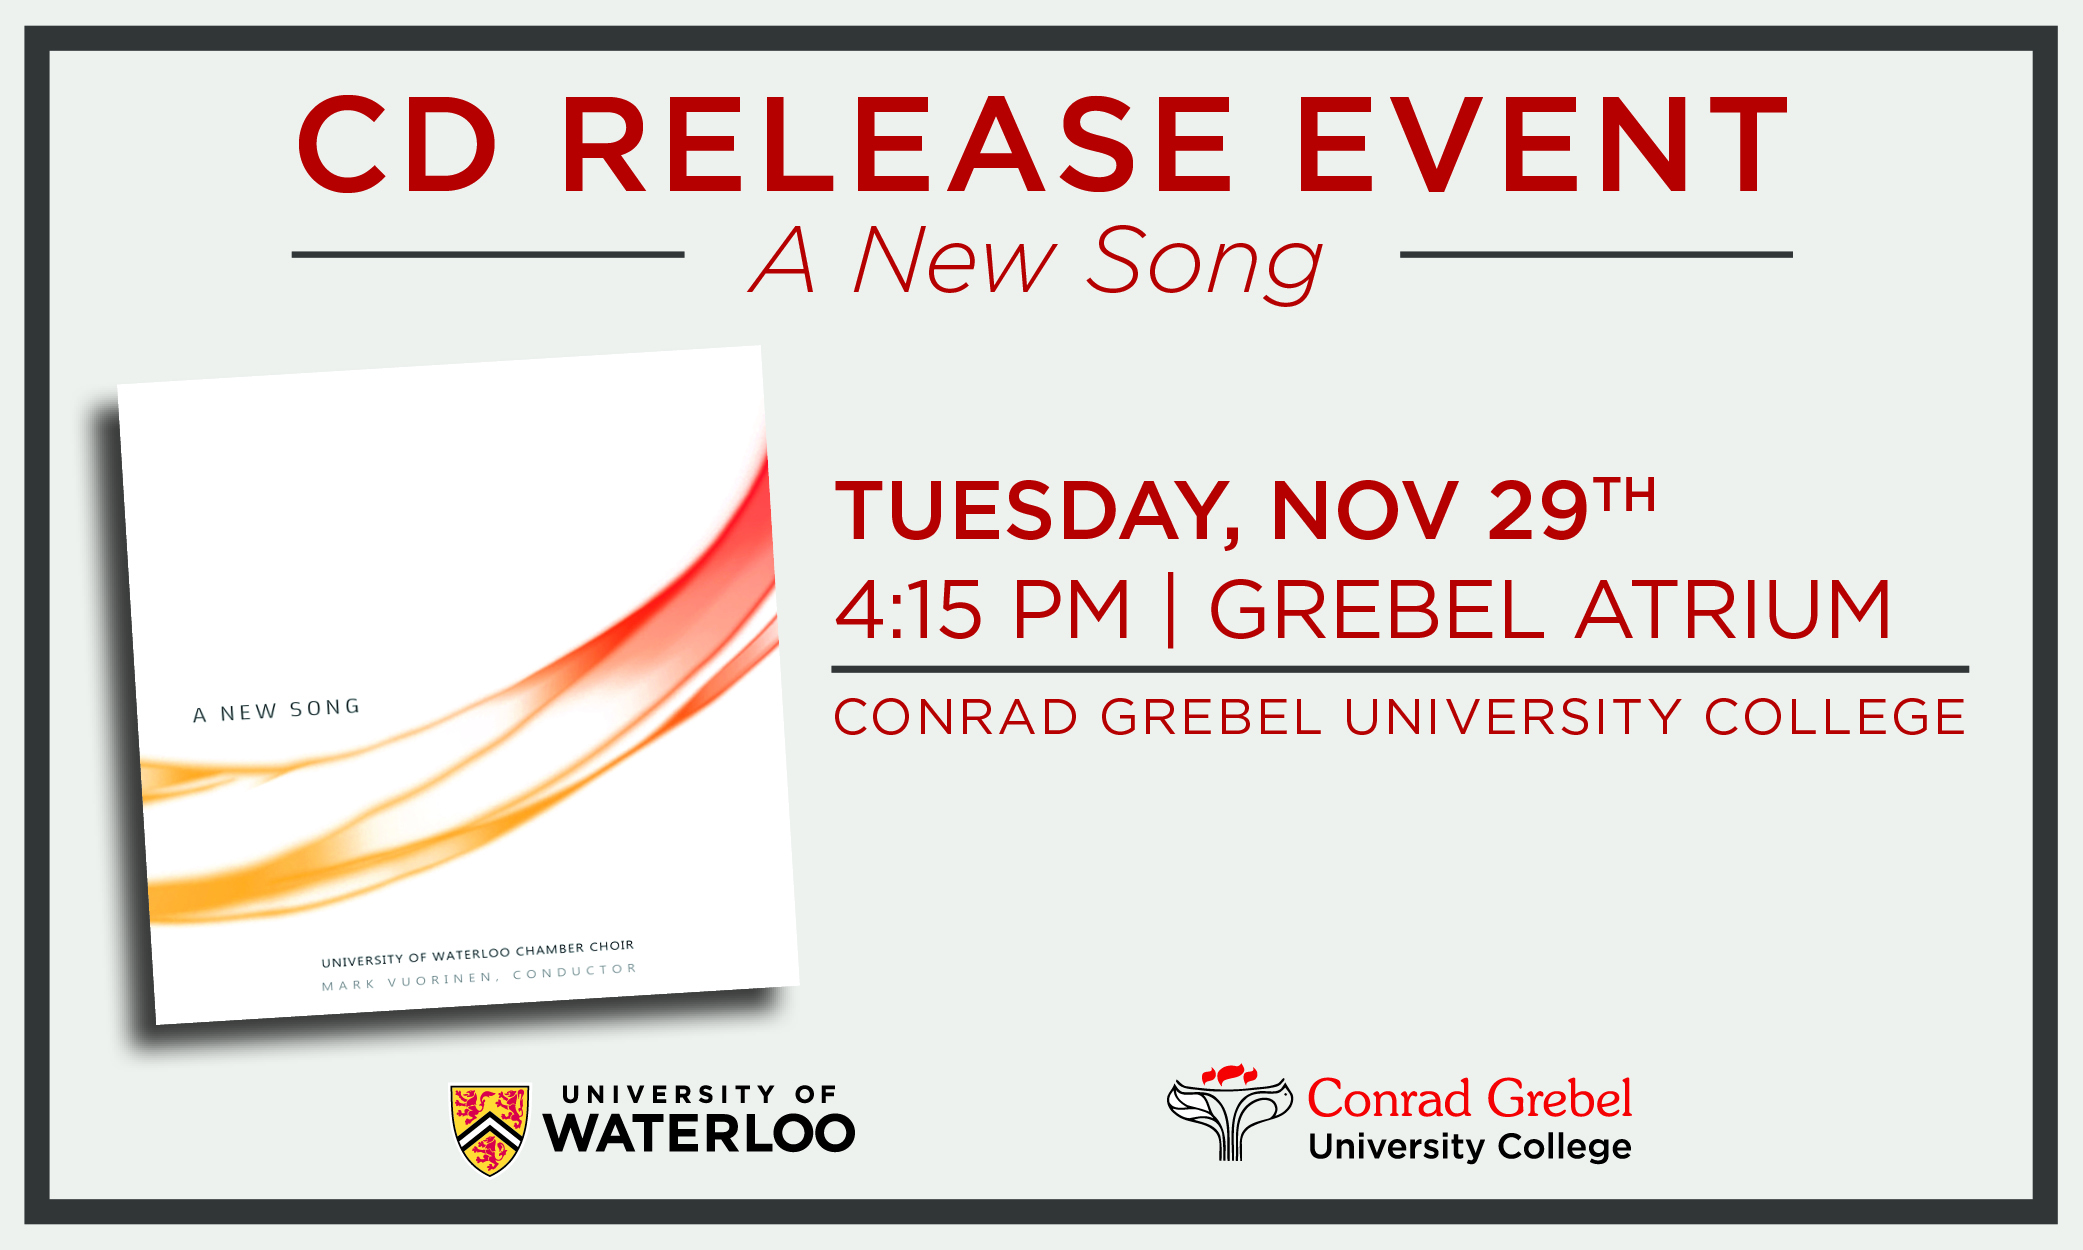 A New Song CD Release Event shareable graphic